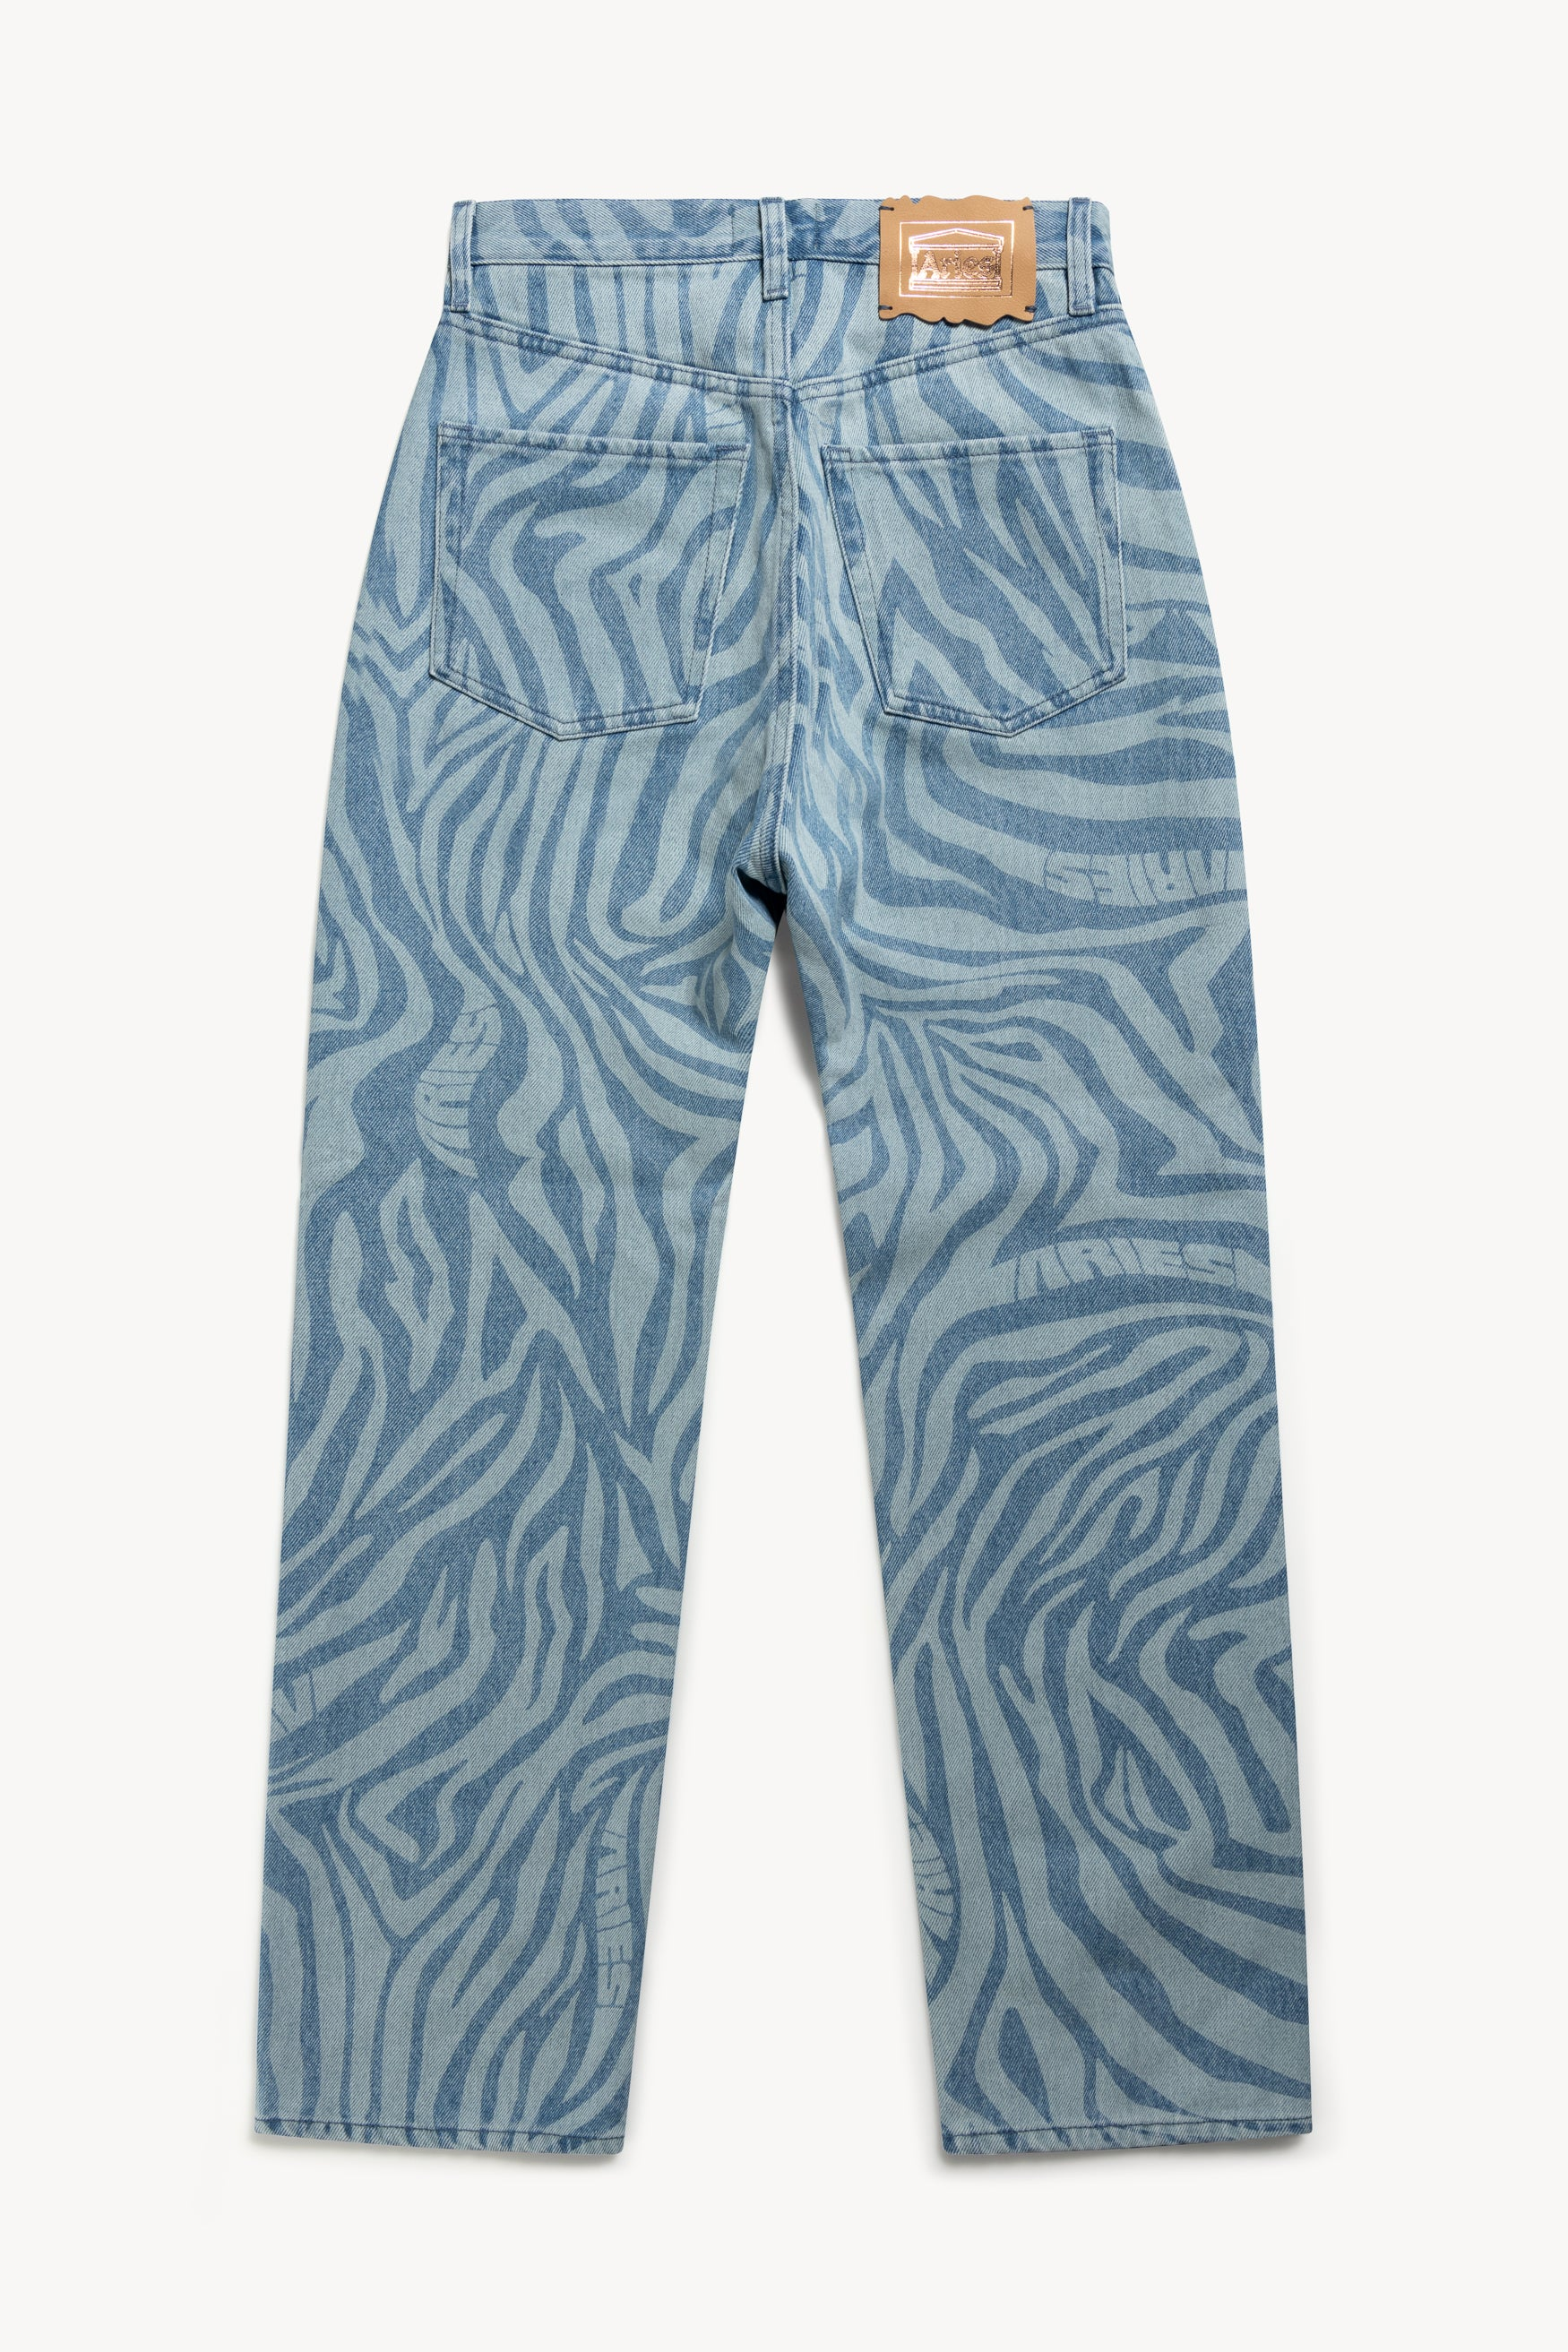 Load image into Gallery viewer, Zebra Print Lilly Jean